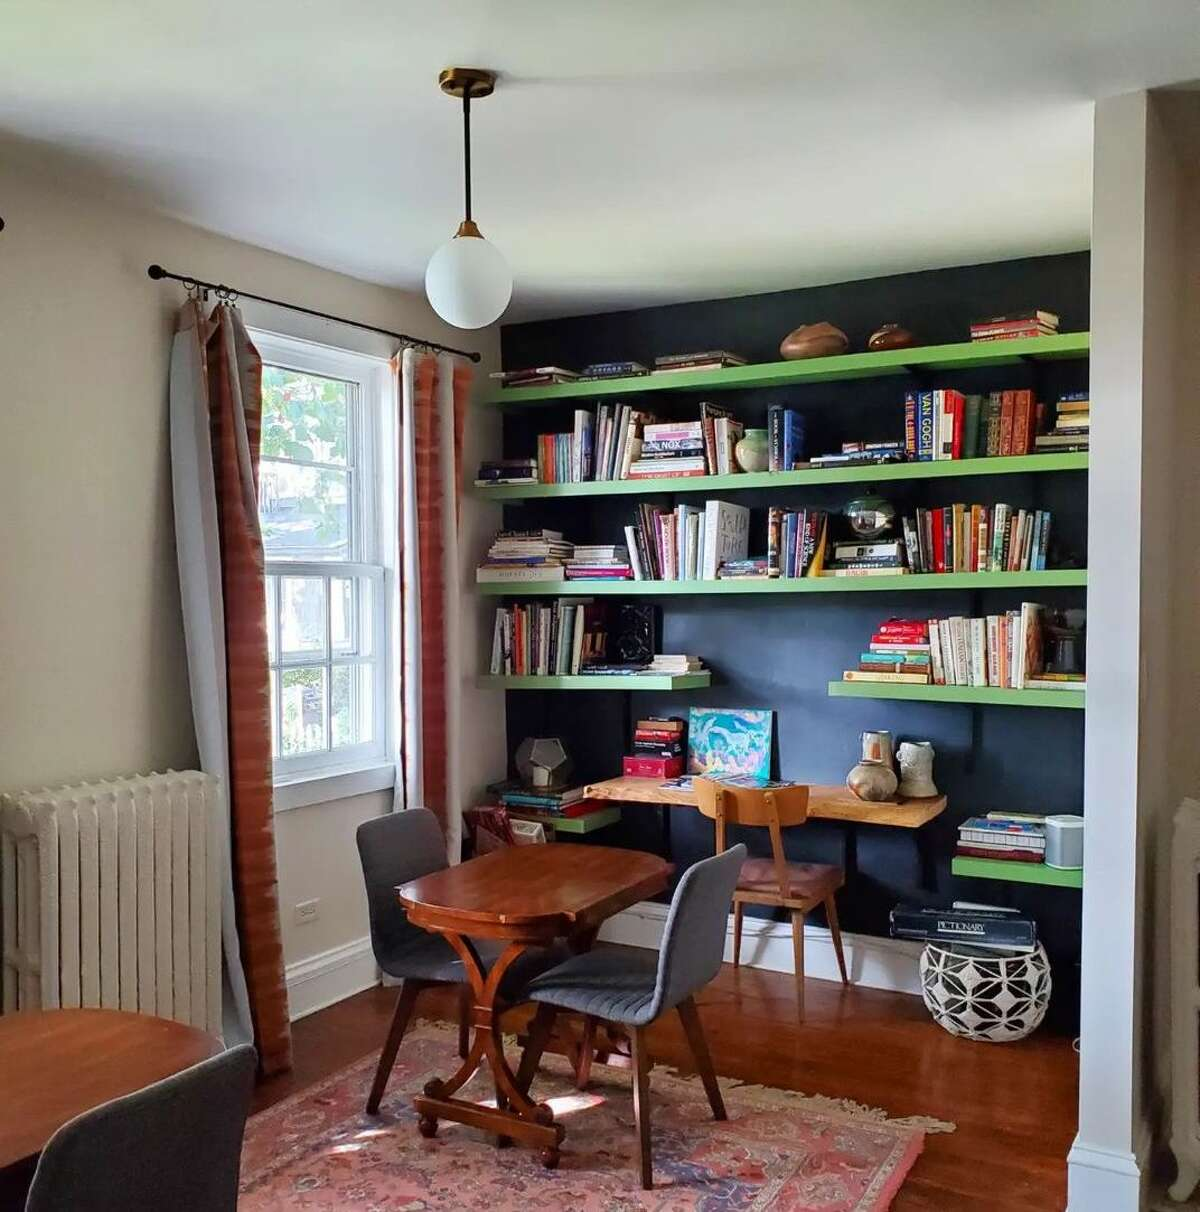 """After hitting up nearby boutiques and wine bar Brunette, guests at the Forsyth can spend downtime in the library. """"I wanted to create a beautiful and welcoming space for people to come and relax, without a lot of rules,"""" said Tamara Ehlin, who runs the B&B with her husband."""